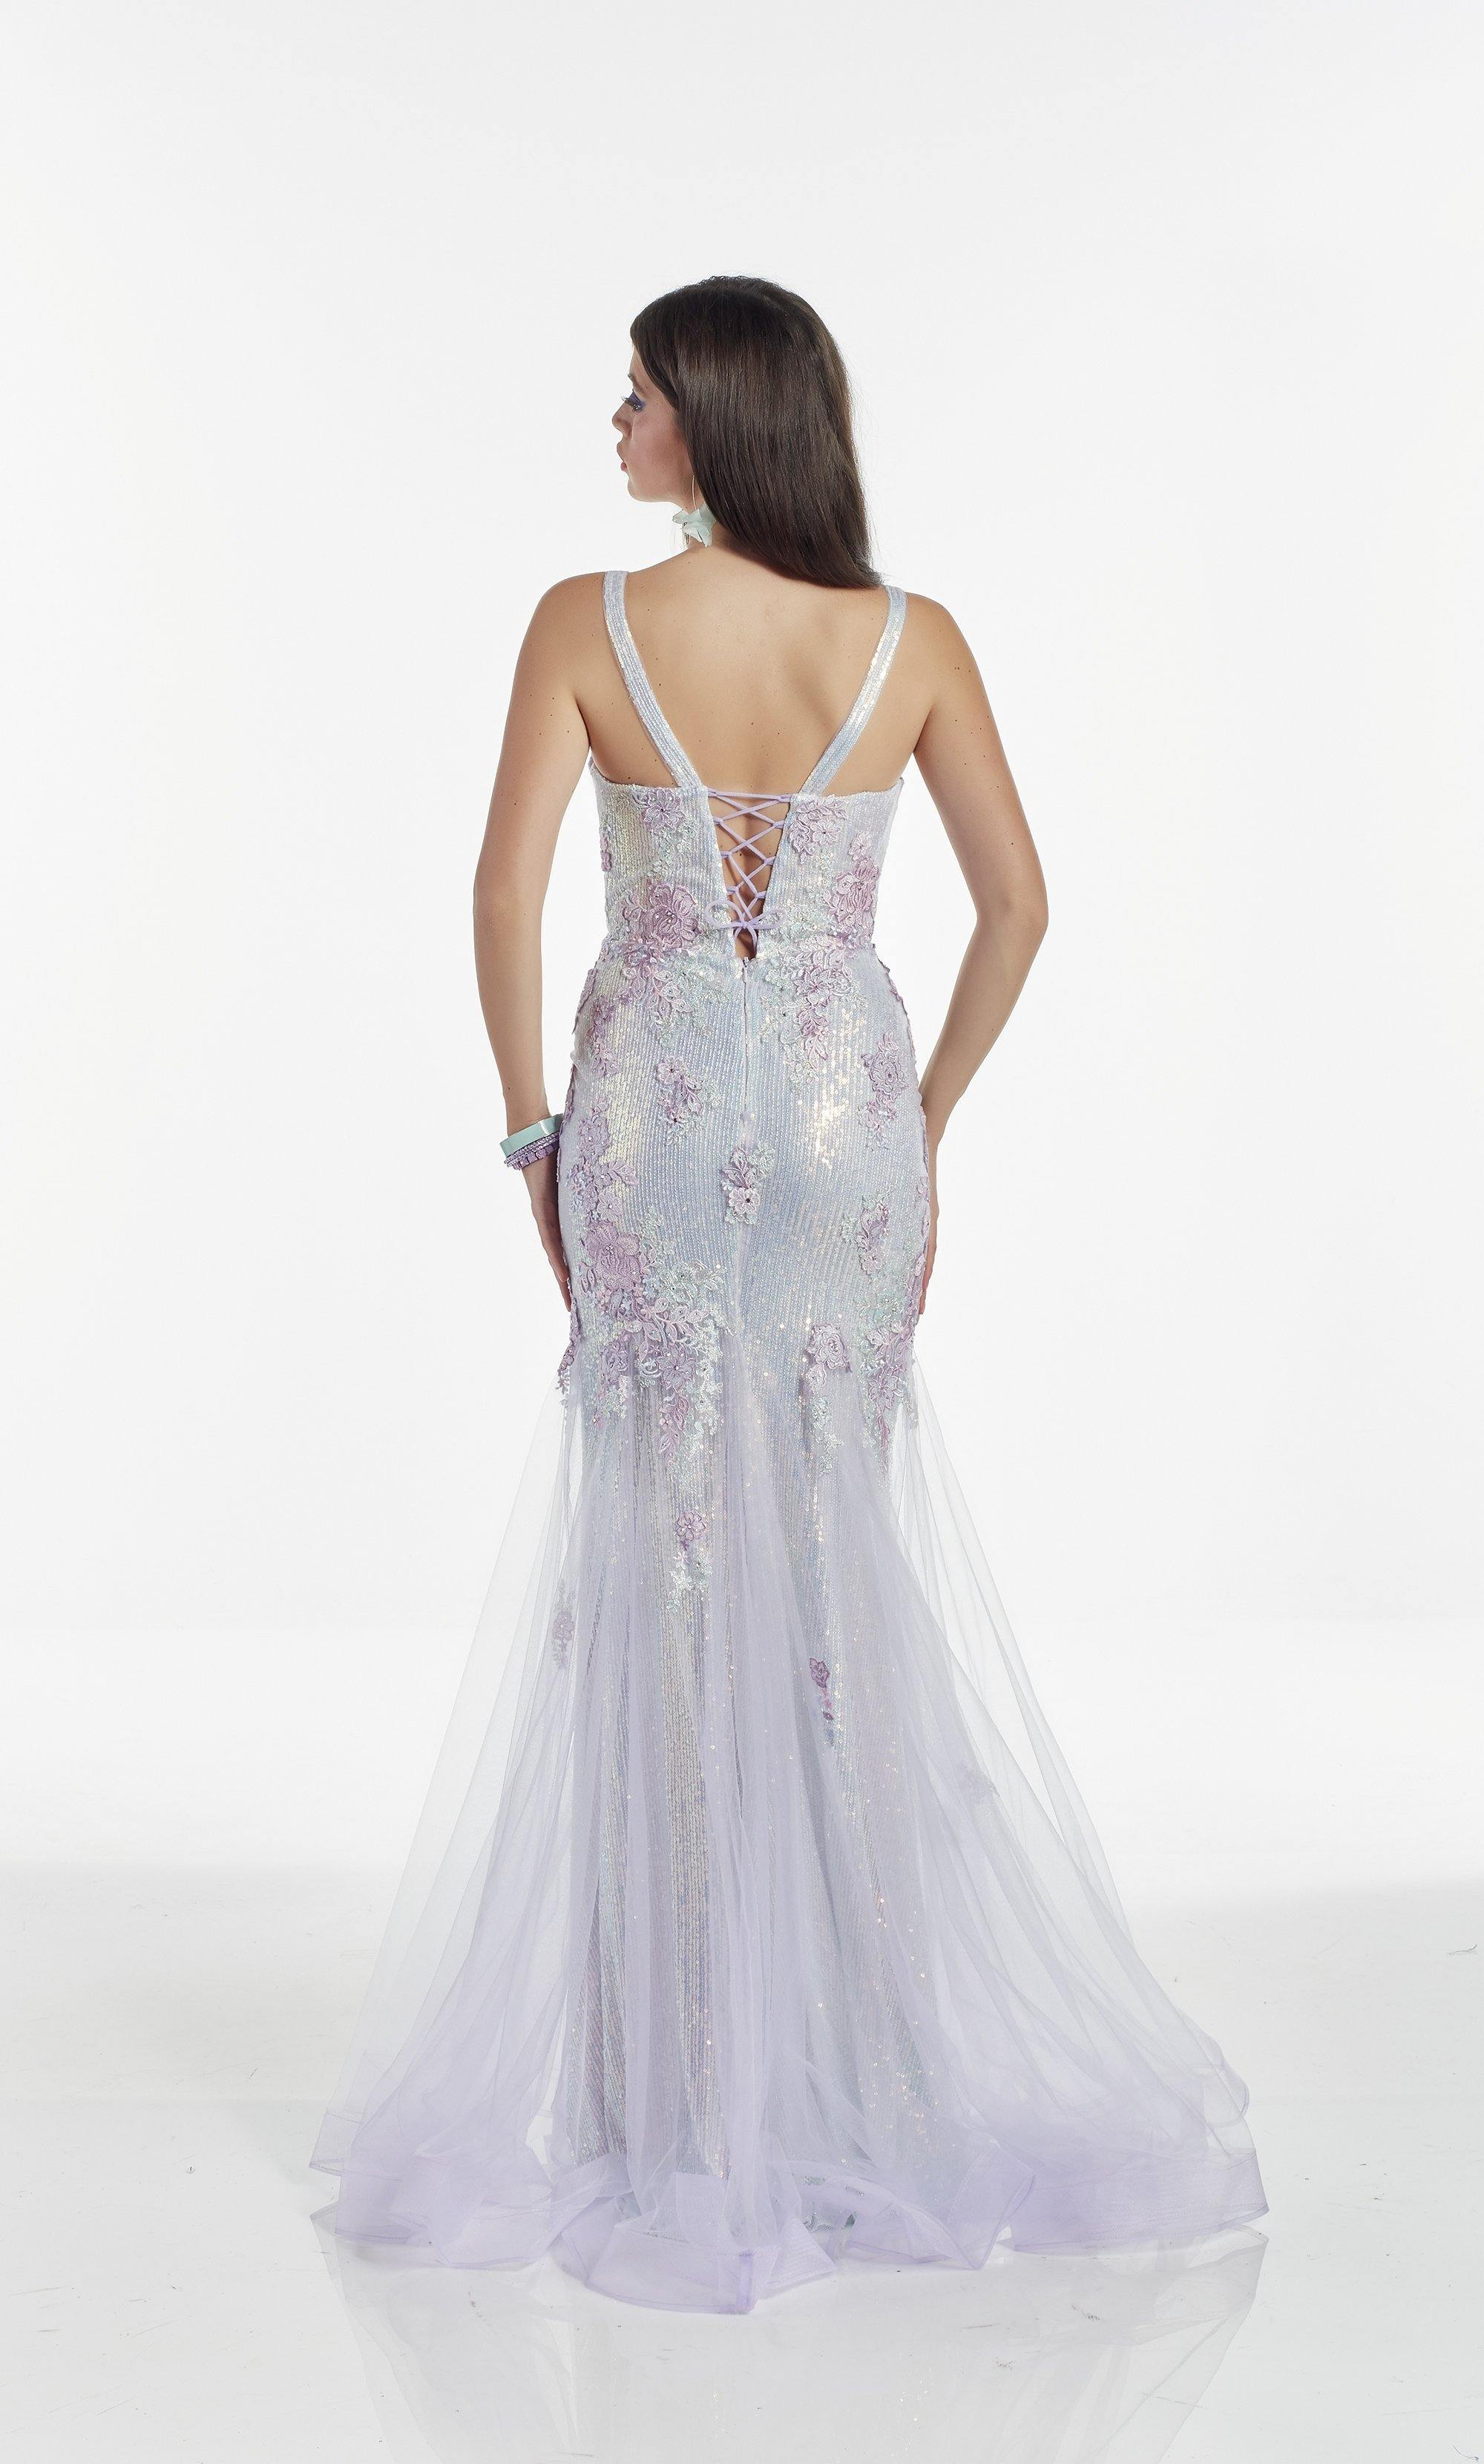 Lilac Iridescent sequin-tulle mermaid dress with a plunging neckline and floral embroidery detail